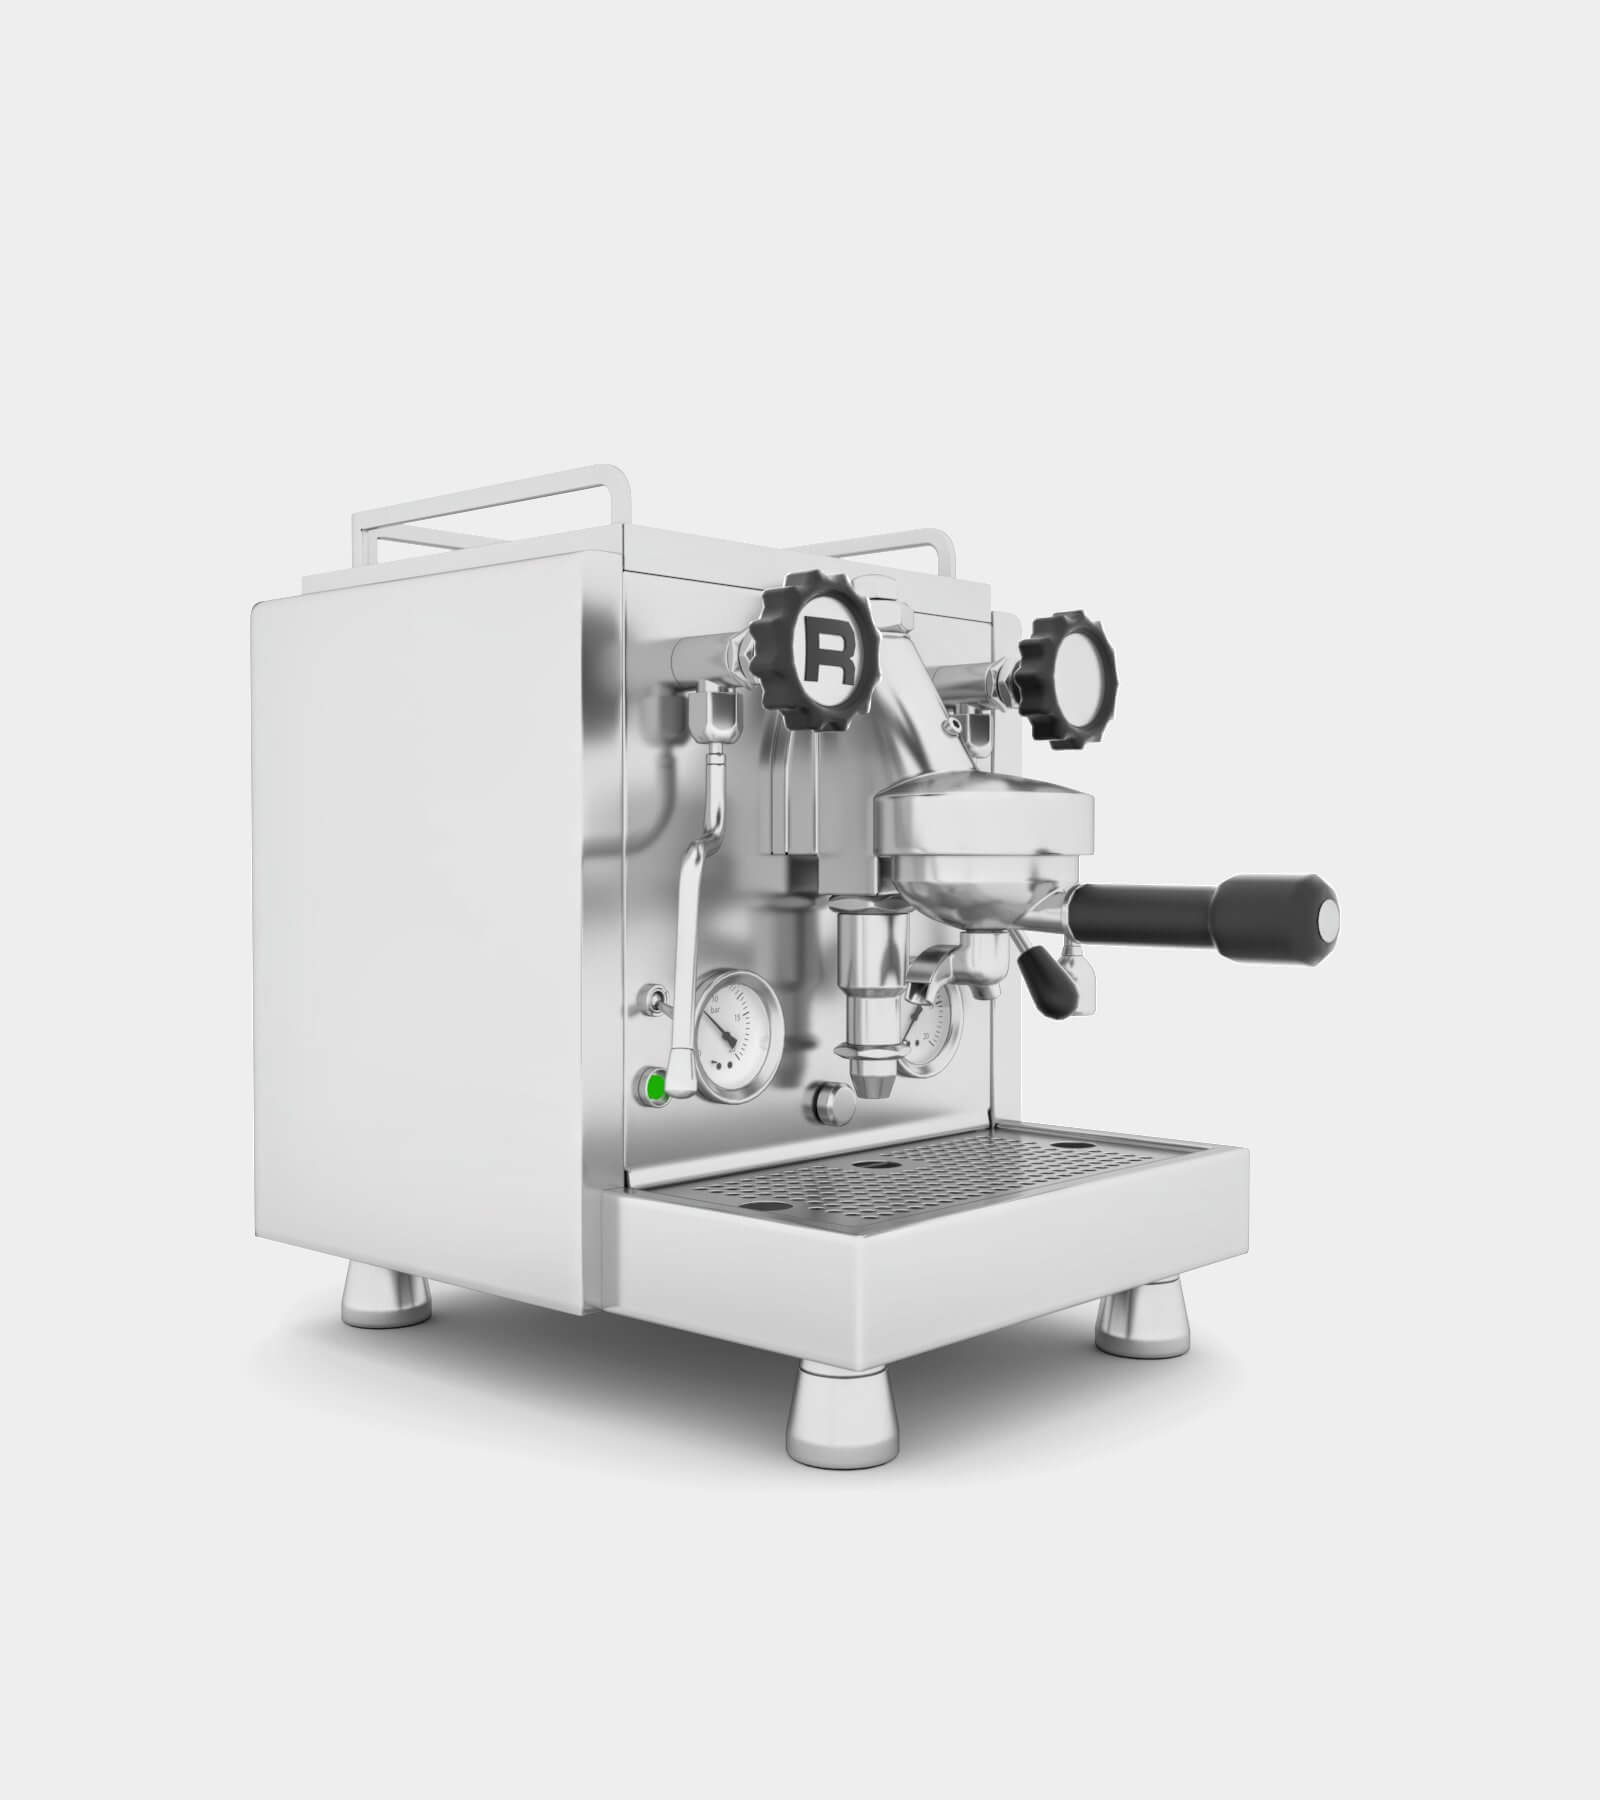 Espresso machine-2 3D Model